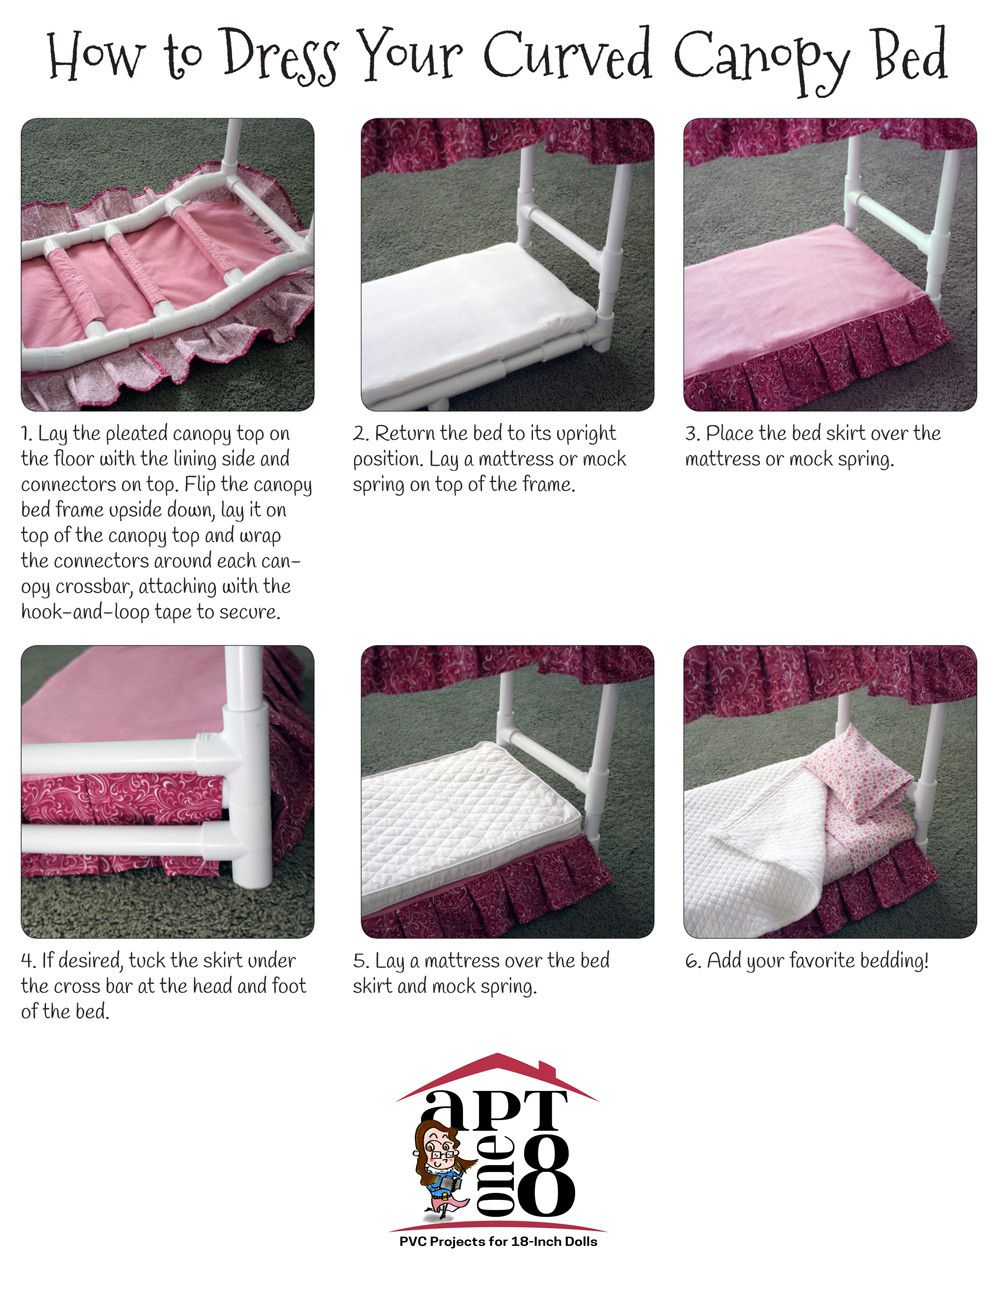 Suite Dreams Collection Curved Canopy Bed Pvc Pattern